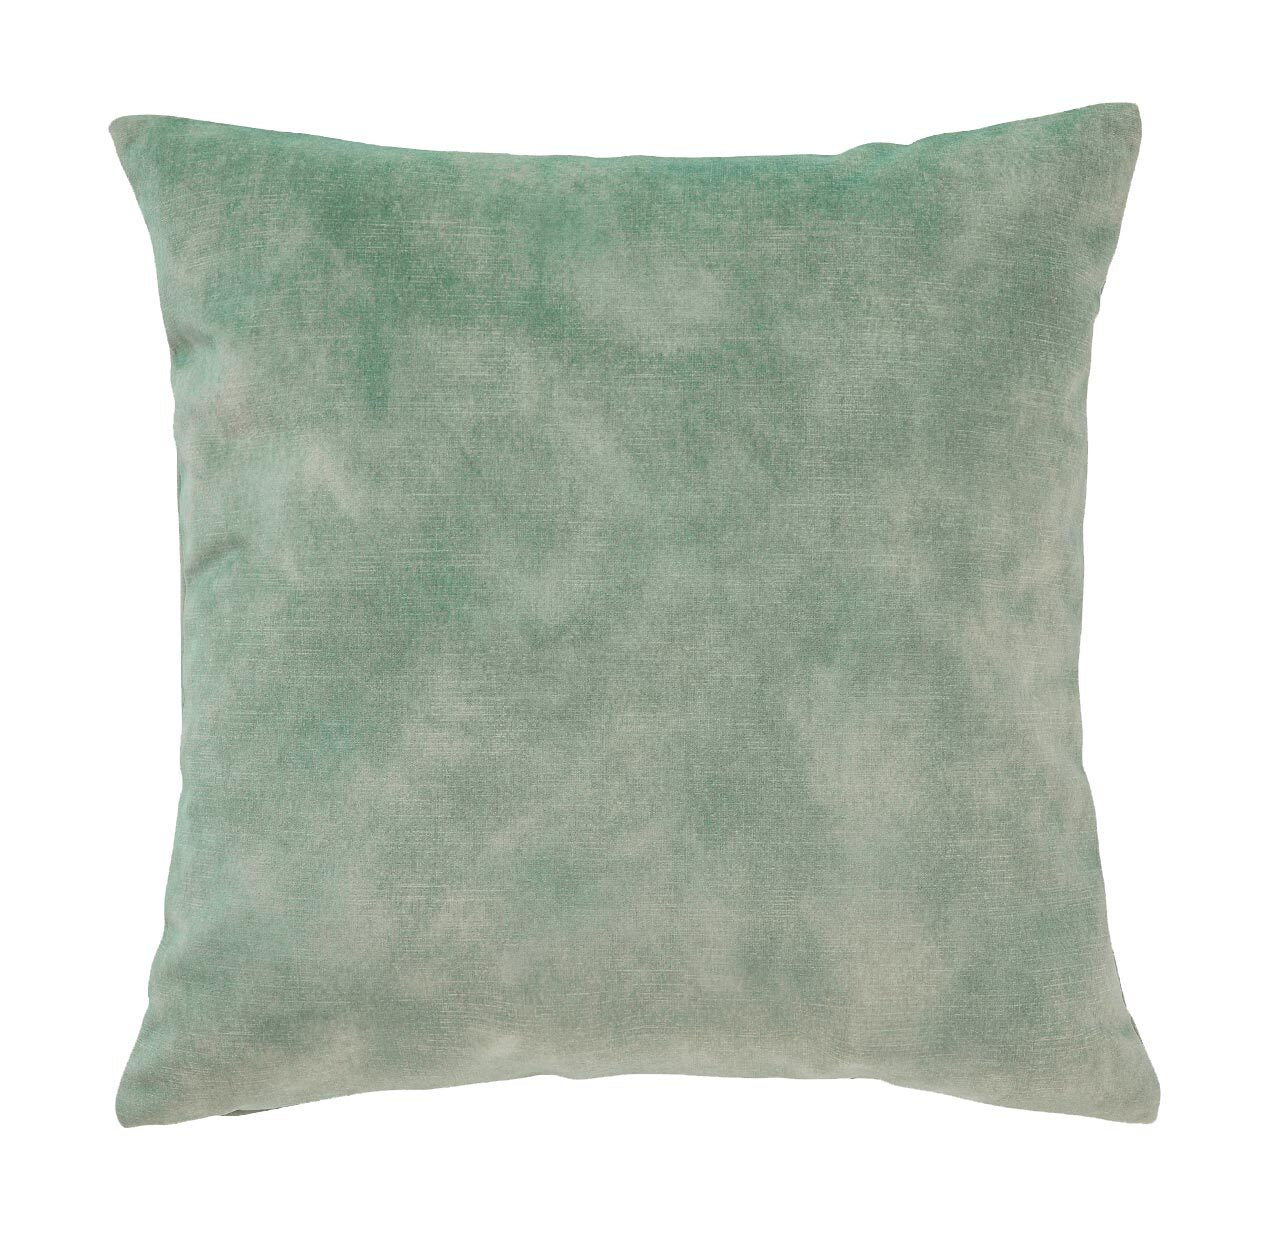 AVA CUSHION - SEAGLASS - The Loom Collection